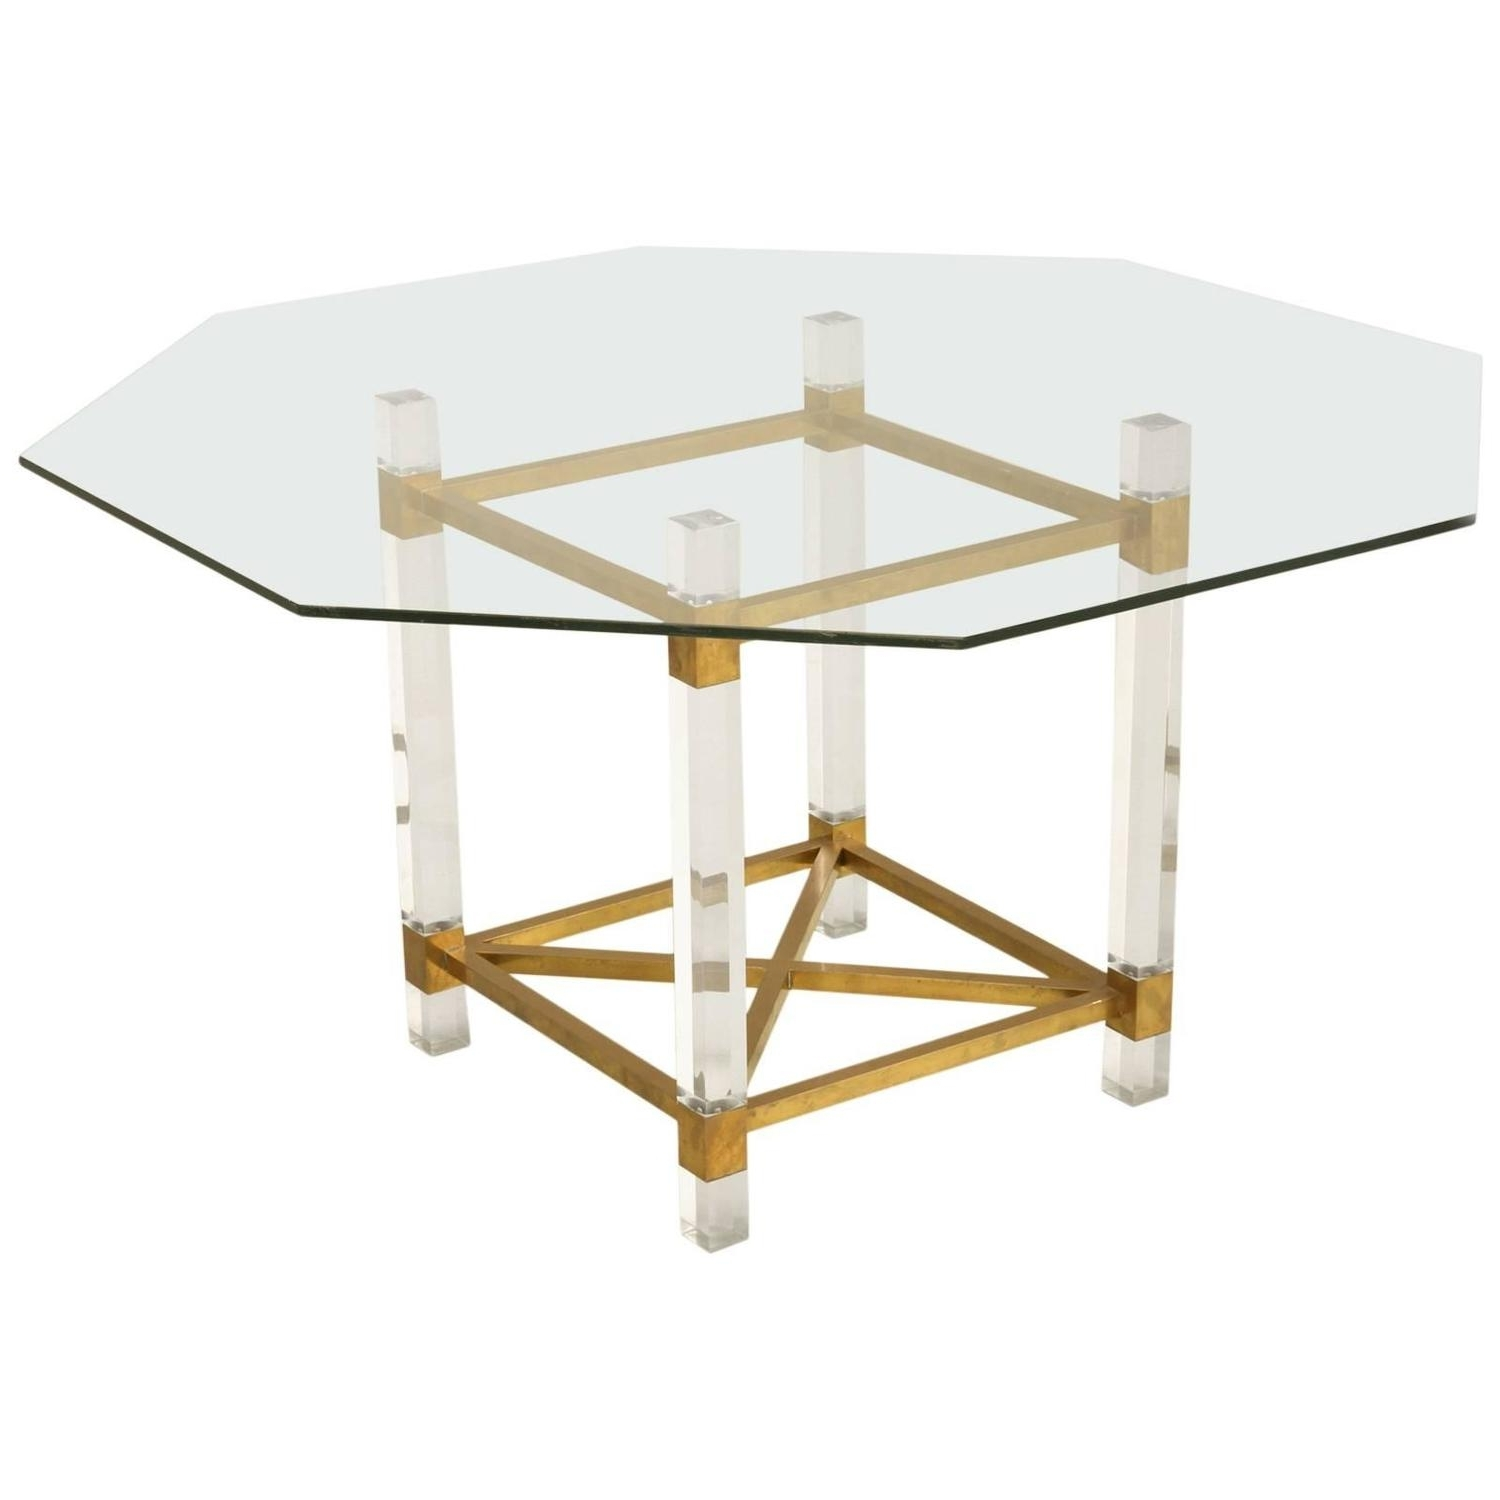 Acrylic Dining Tables In Favorite French Acrylic And Brass Dining Table For Sale At 1Stdibs (Gallery 11 of 25)